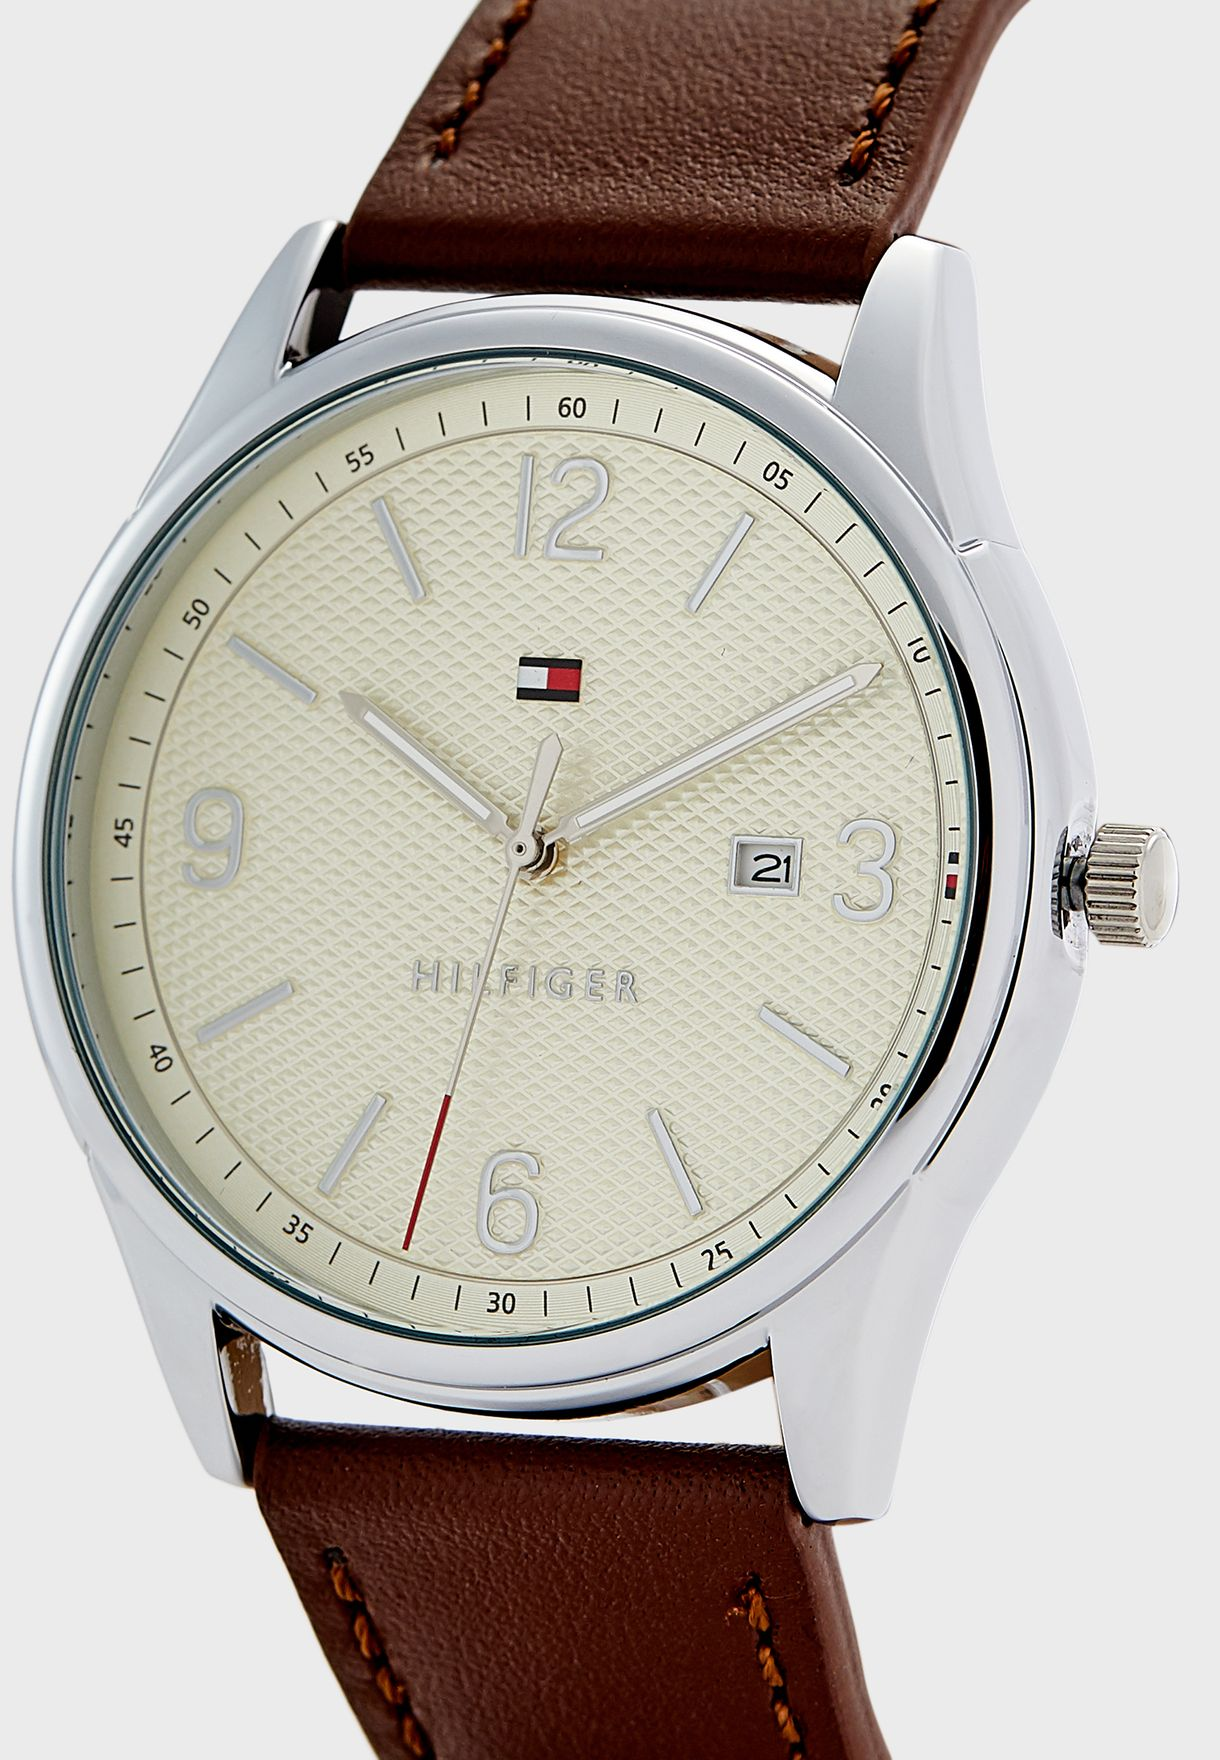 1791814 Analog Watch